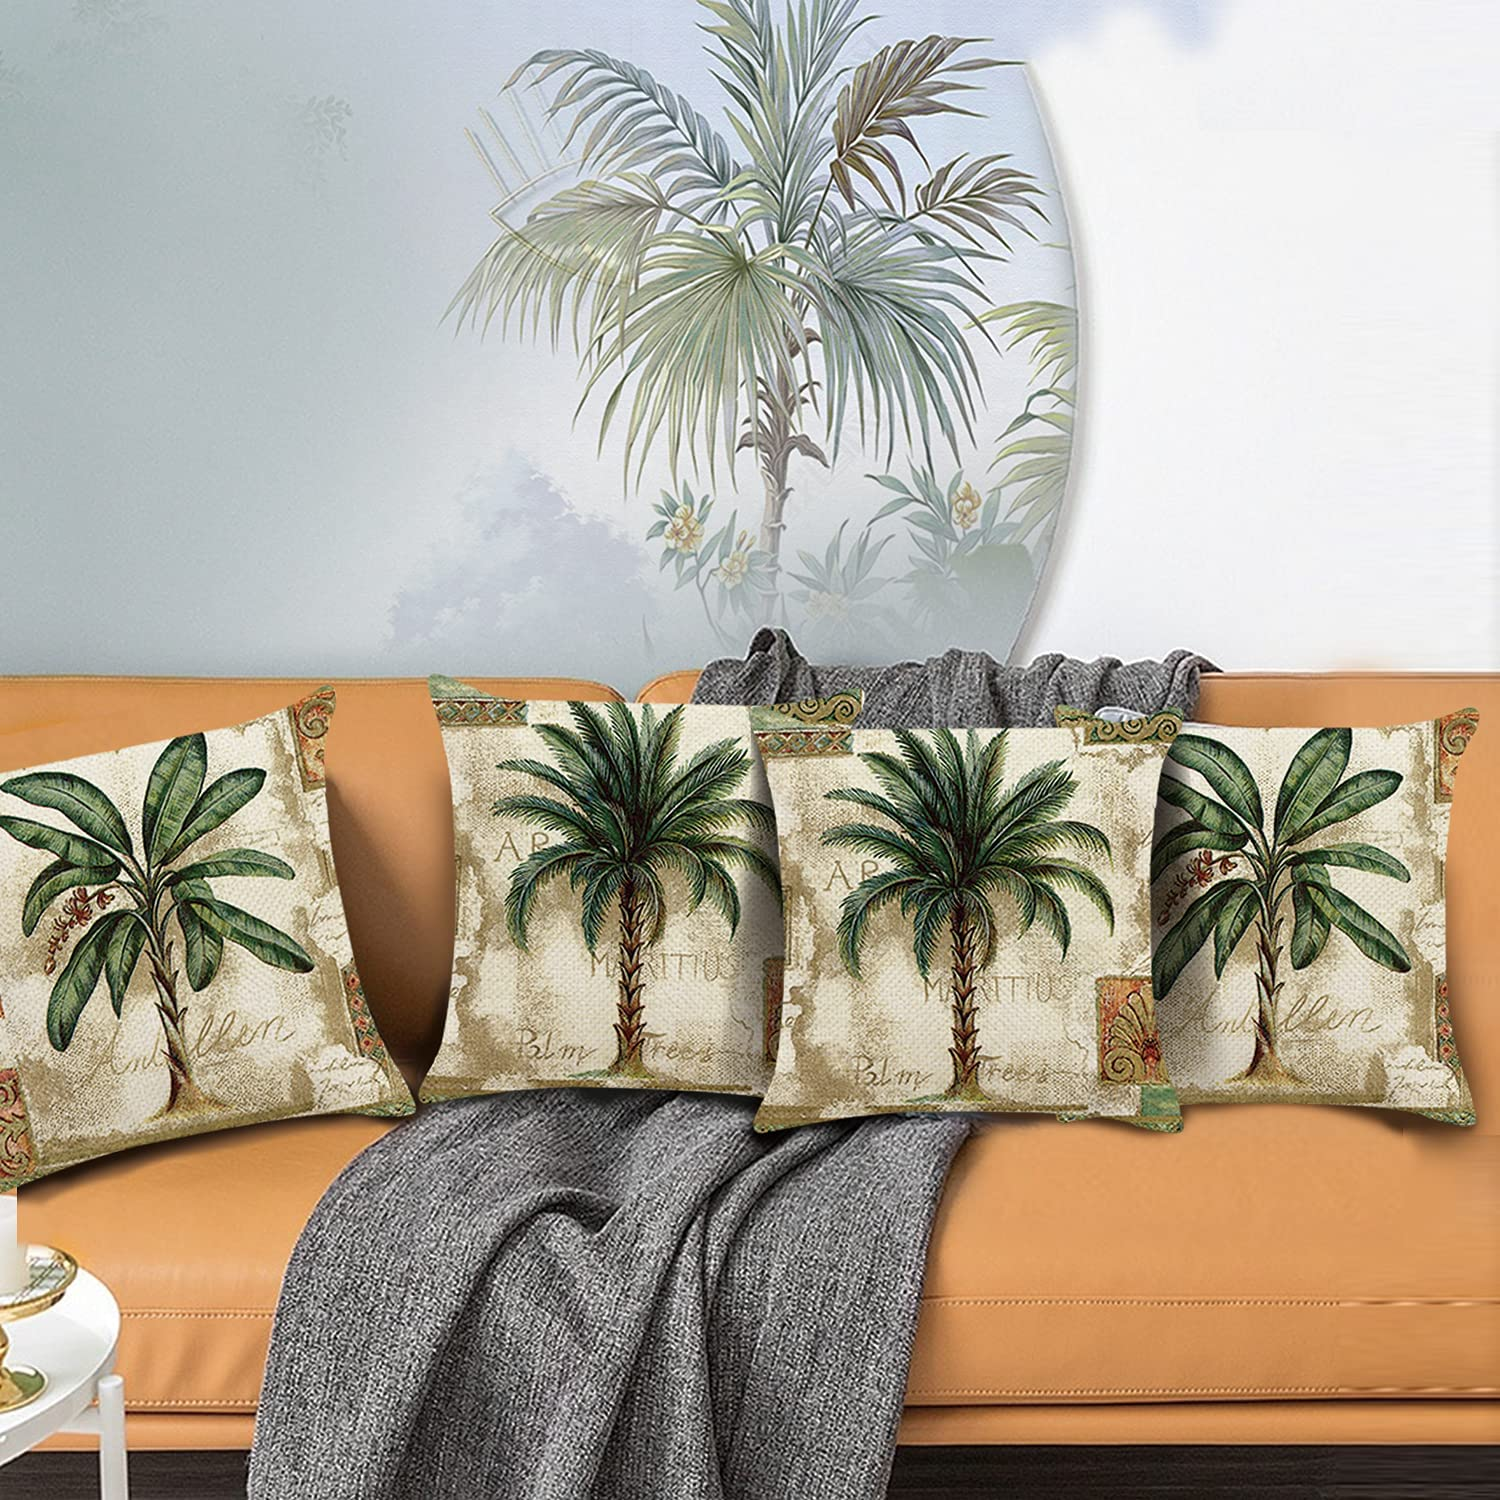 Bonhause Tropical Palm Tree Throw Pillow Covers 20 x 20 Inch Set of 20  Vintage Green Plant Decorative Throw Pillow Cases Polyester Linen Cushion  Covers ...